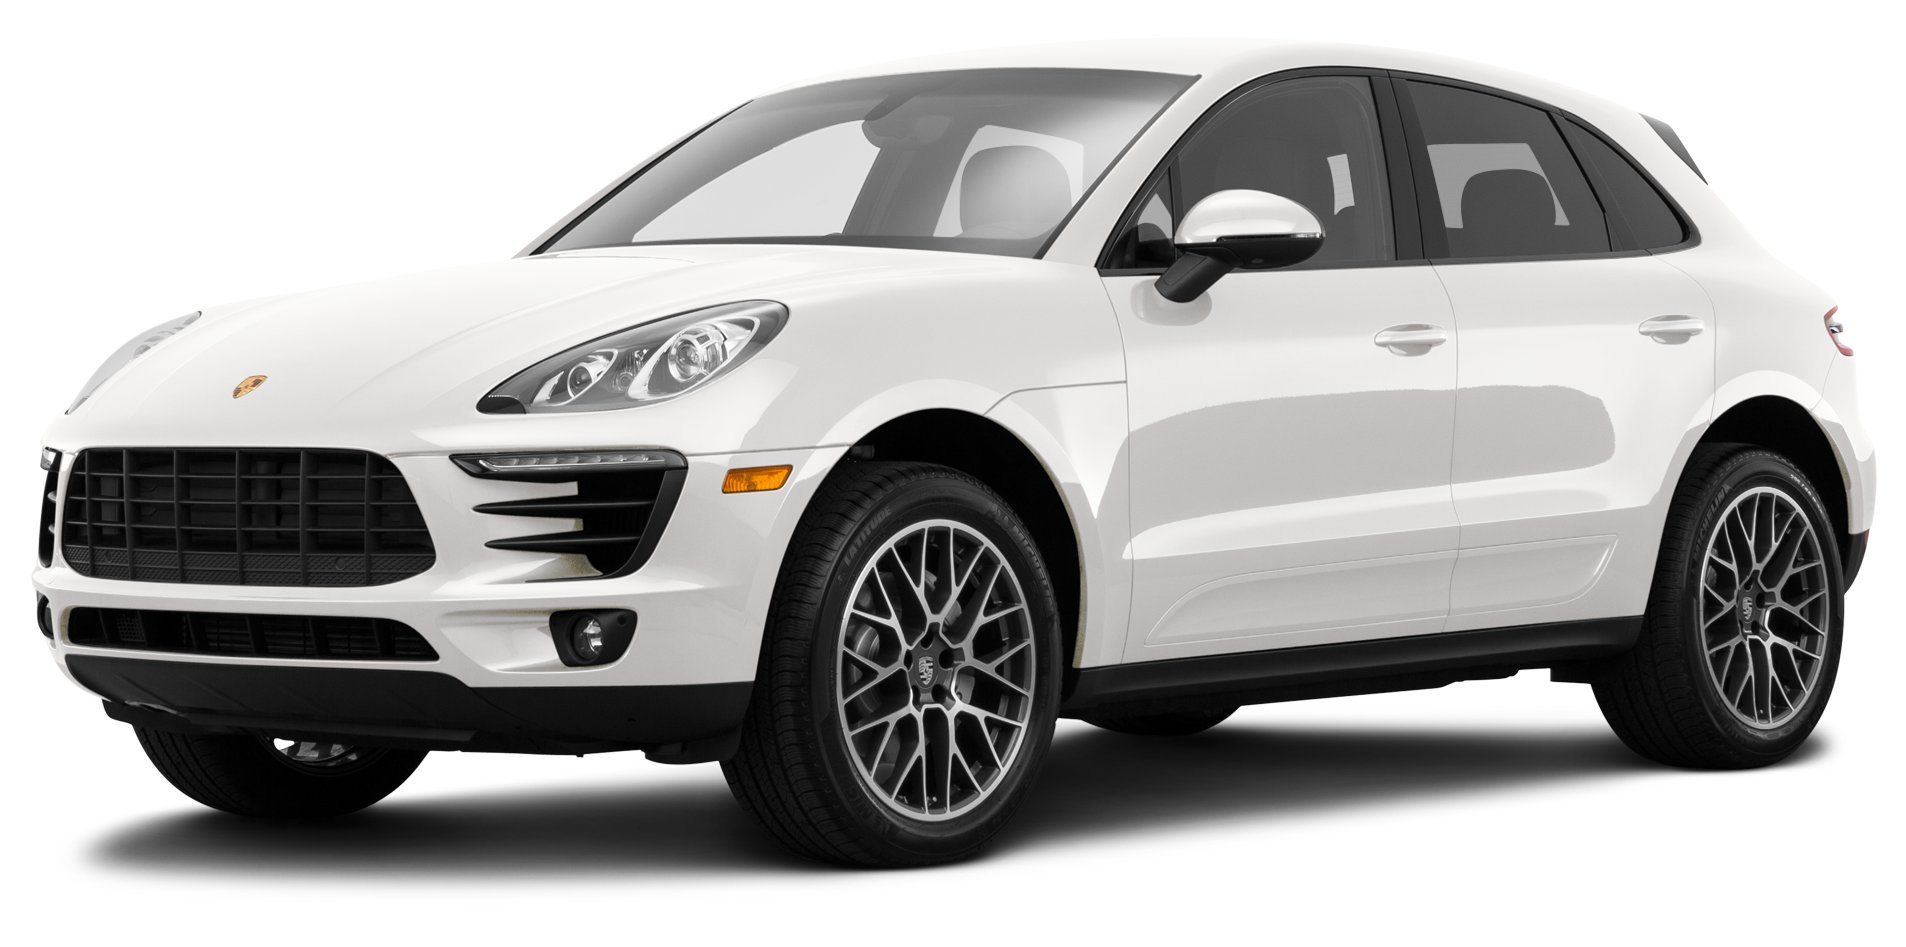 2016 porsche macan reviews images and specs vehicles. Black Bedroom Furniture Sets. Home Design Ideas